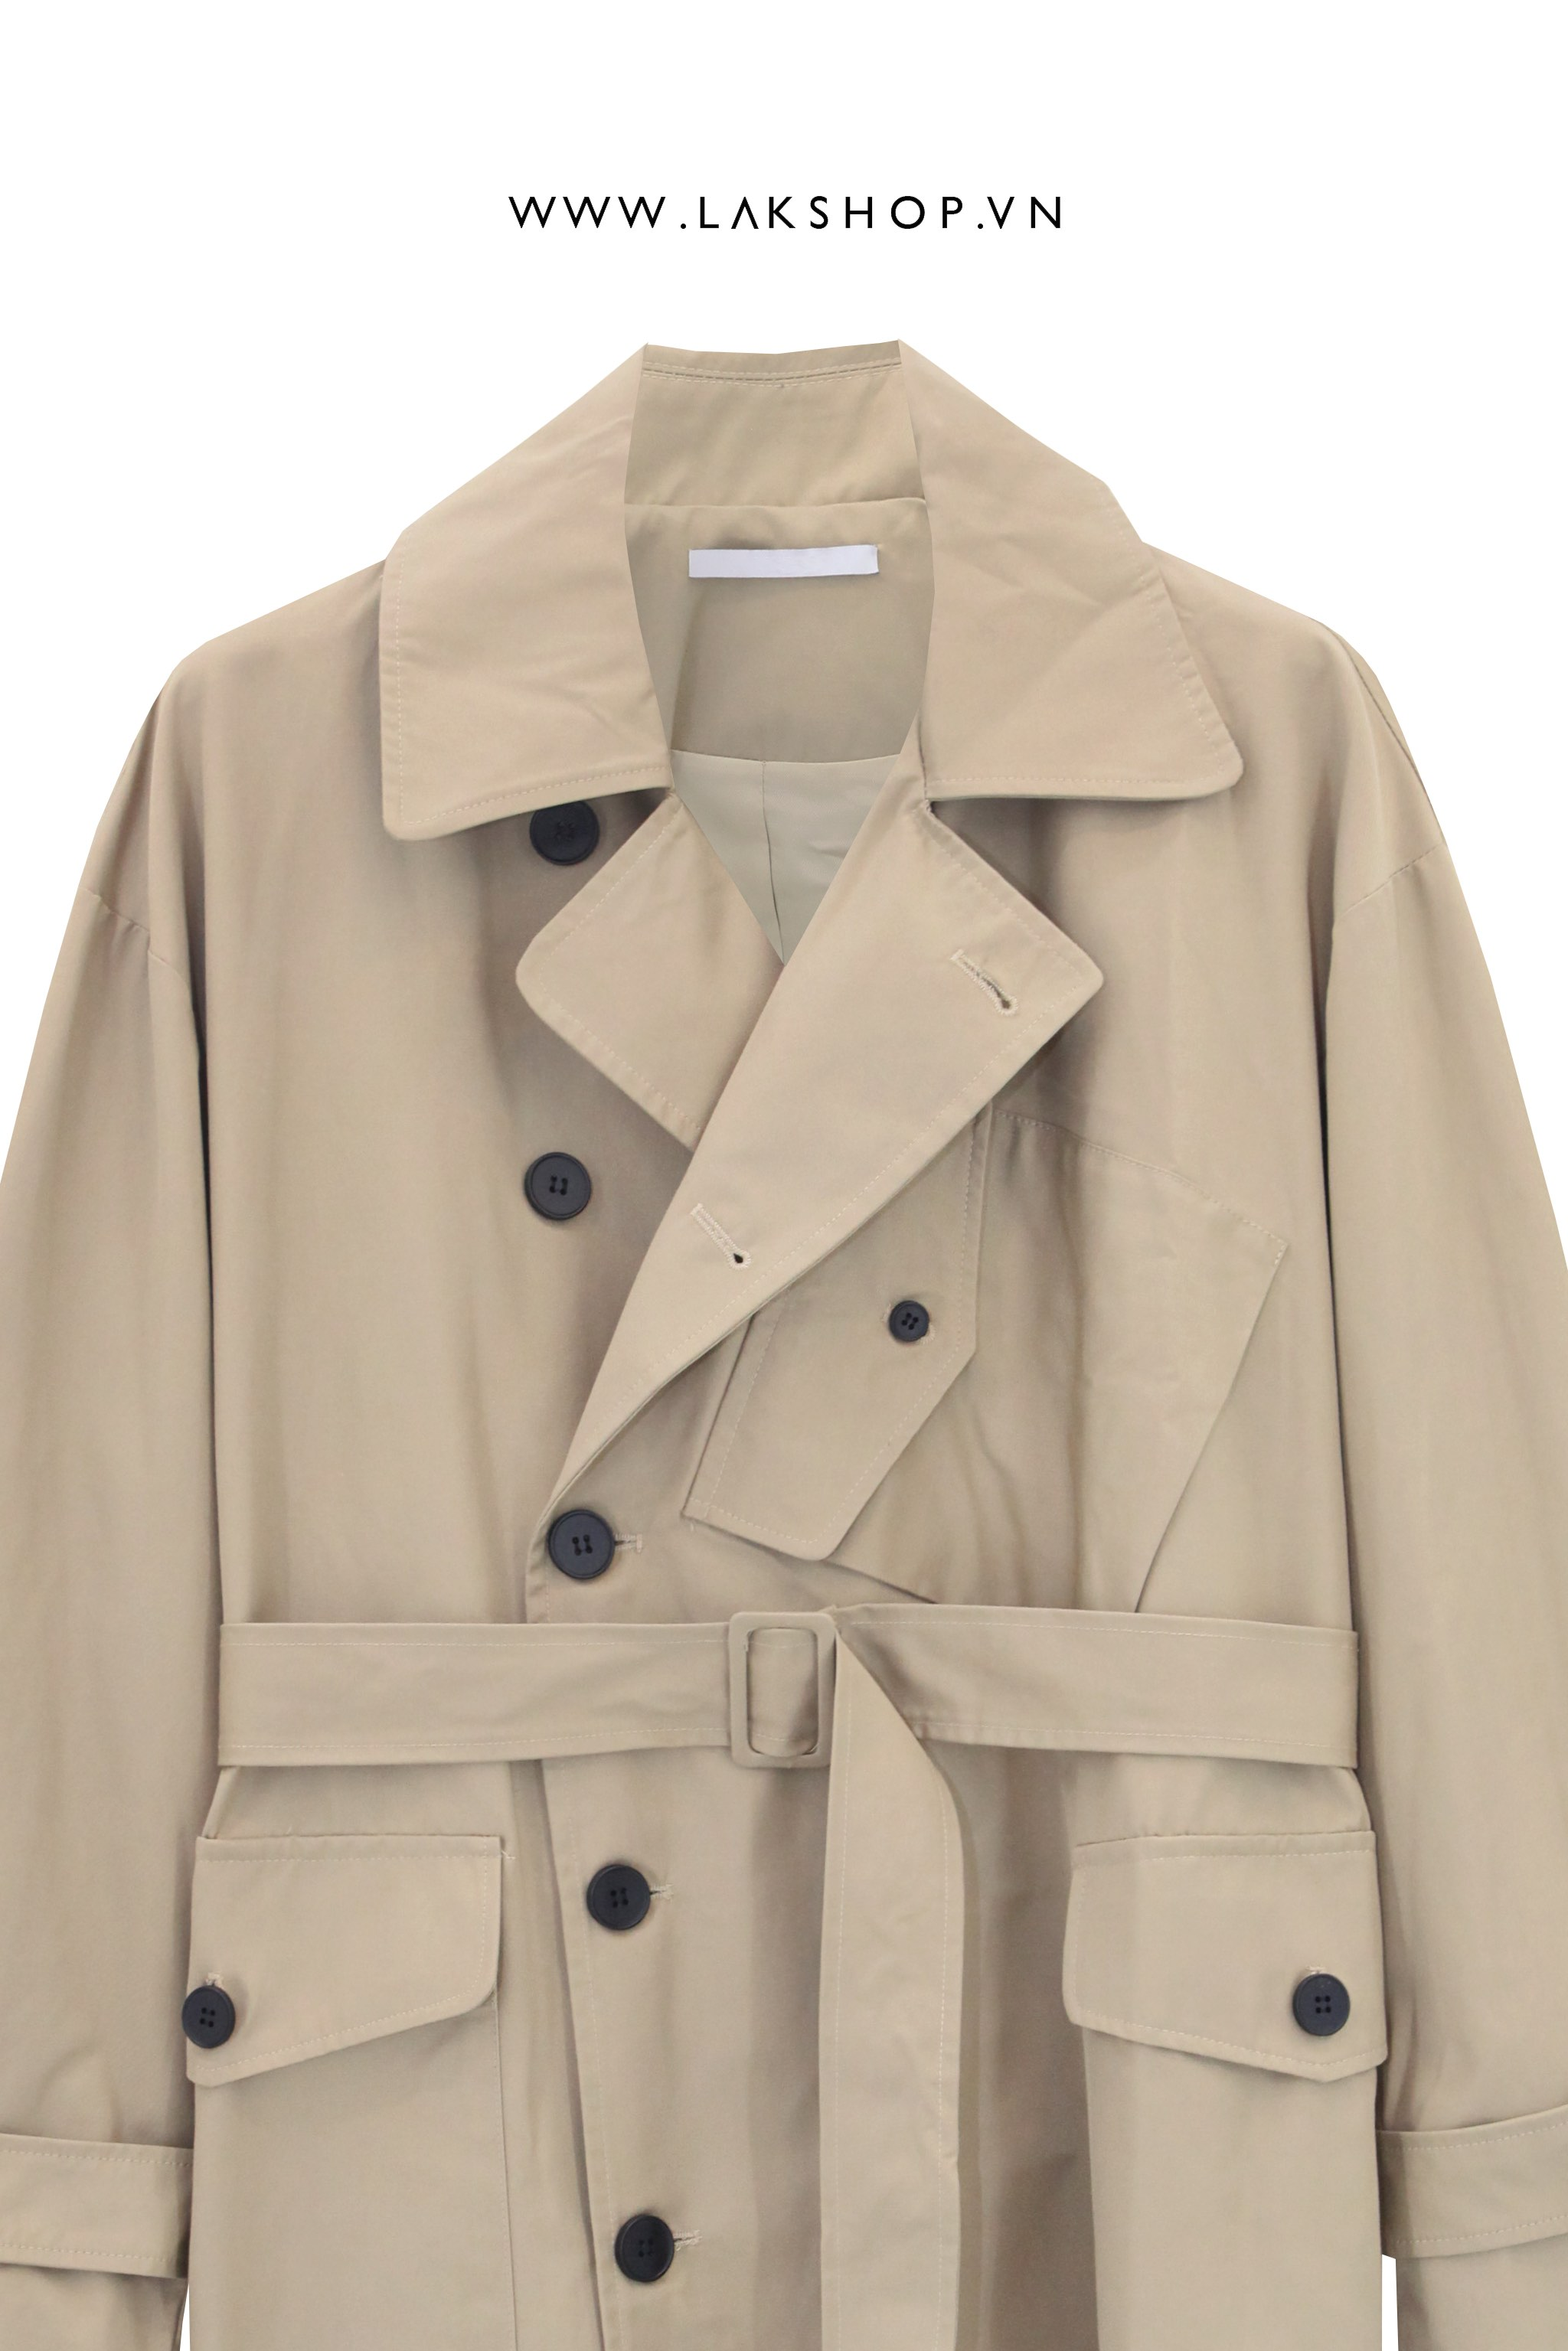 Belted Tan Trench Coat with Bag ds20